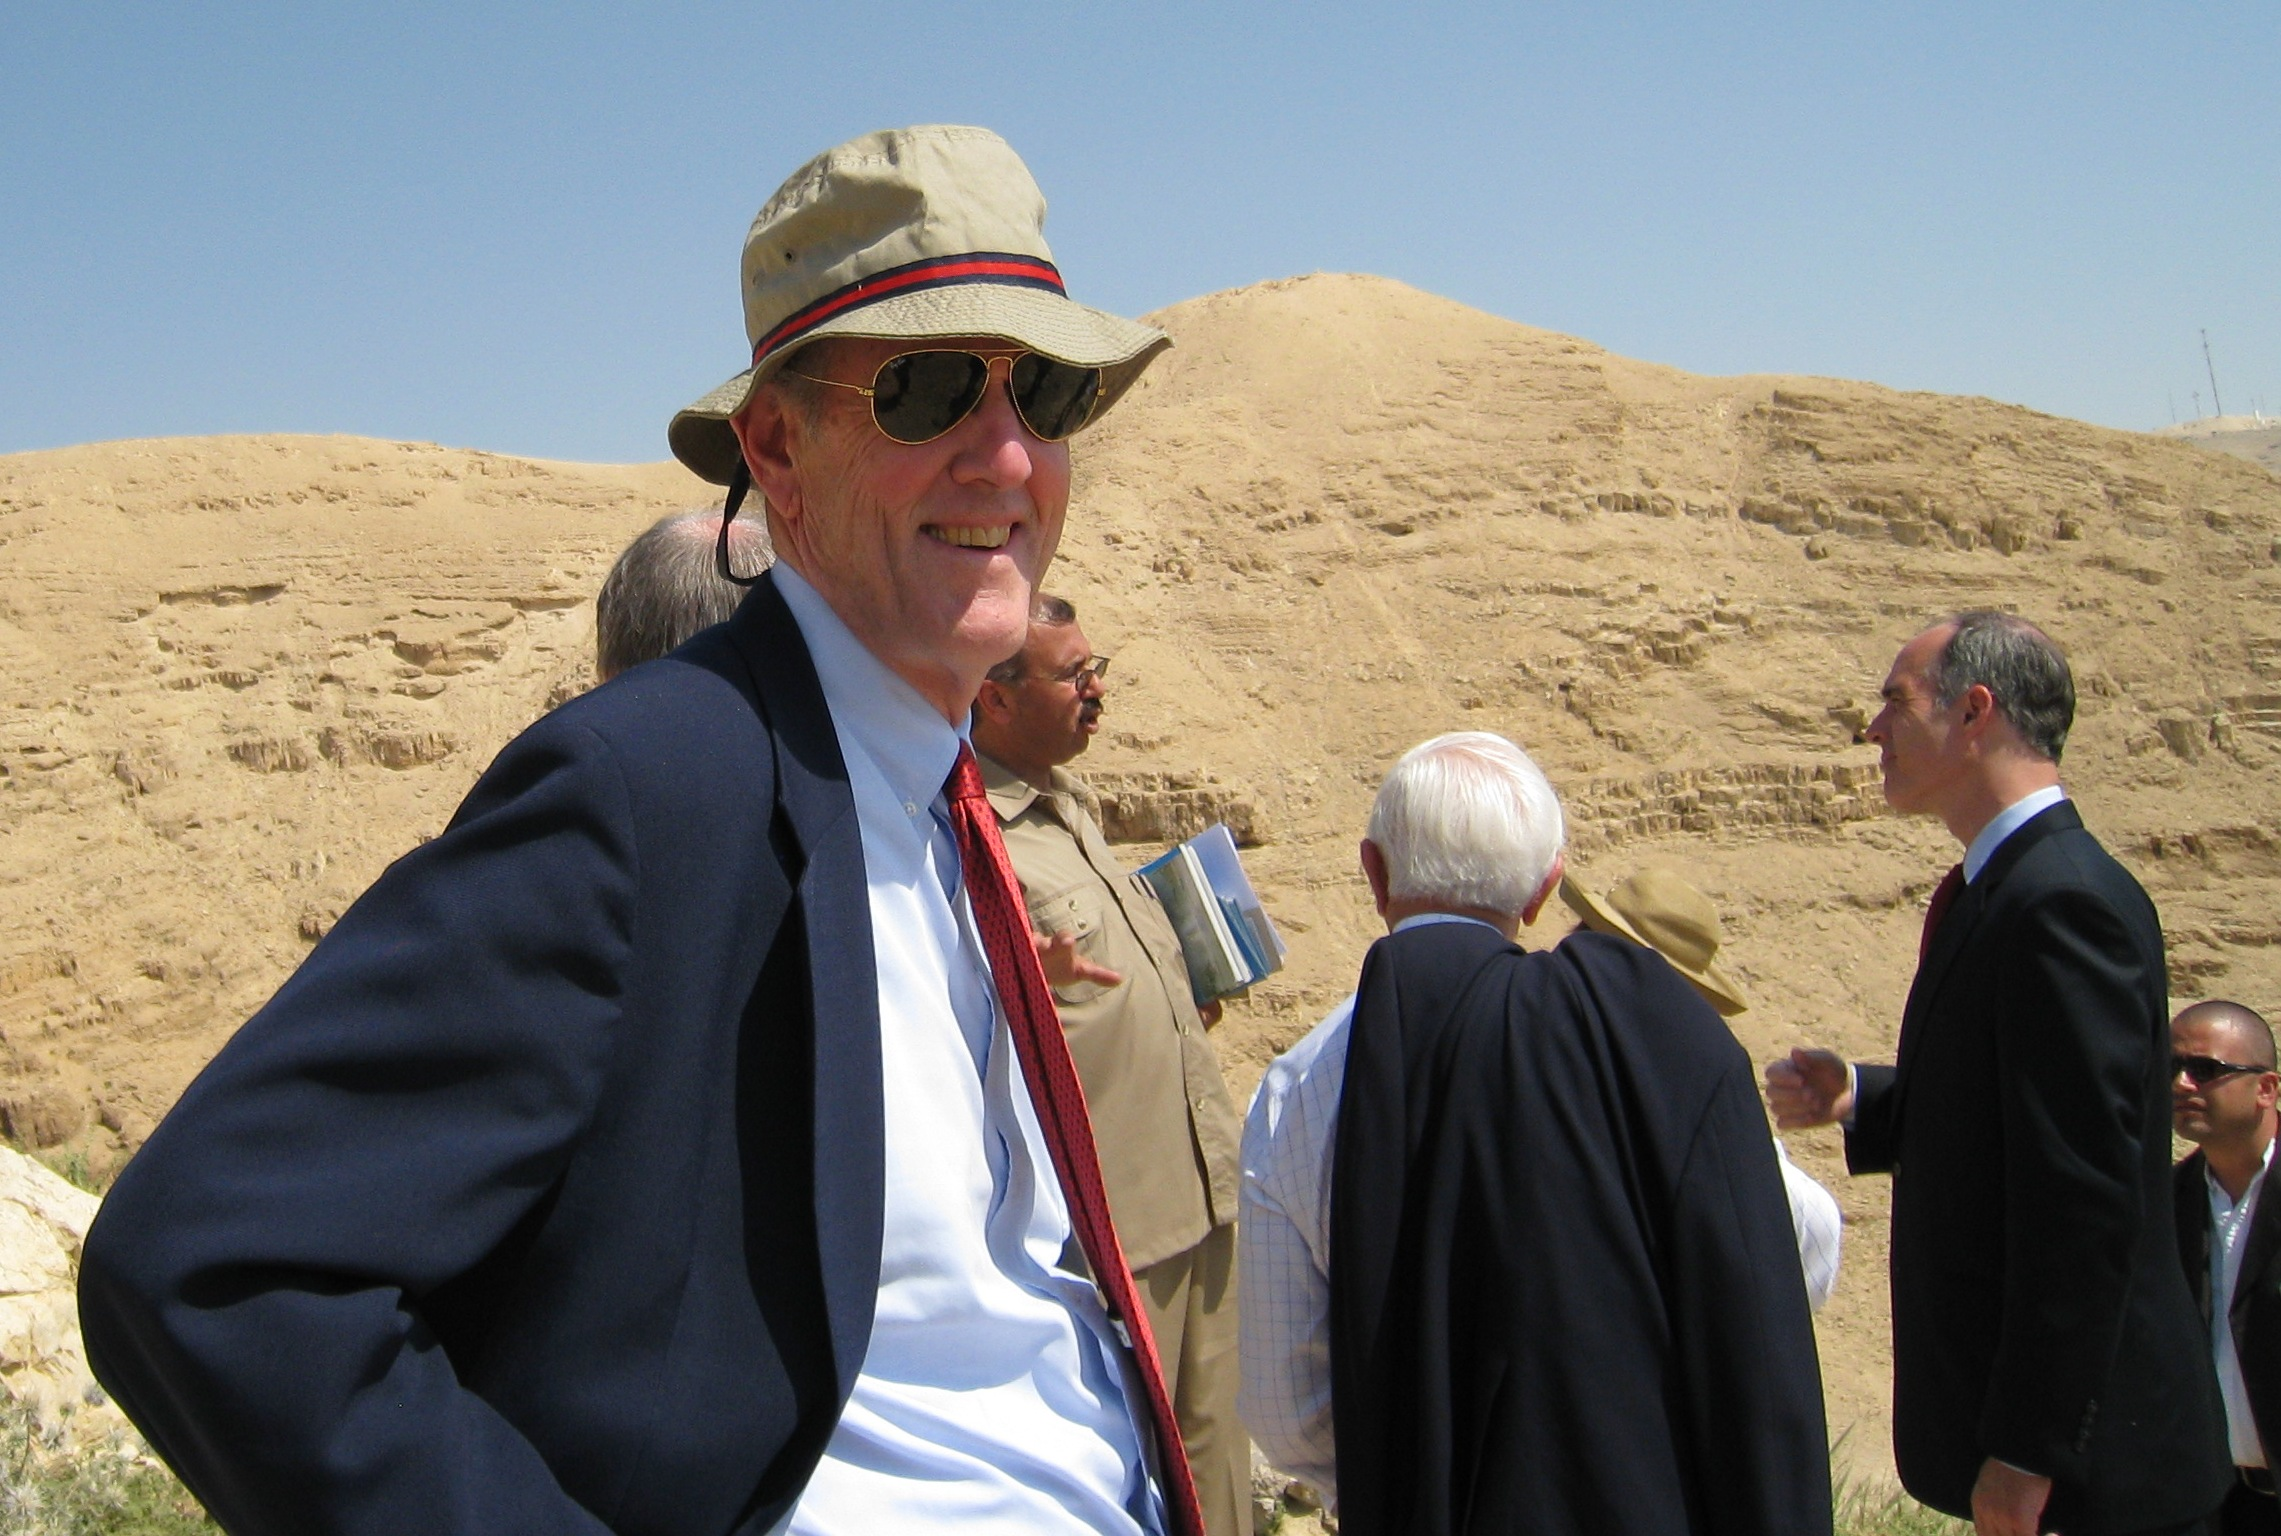 Photograph of Senator Kaufman in the West Bank city of Jericho, 2009 May